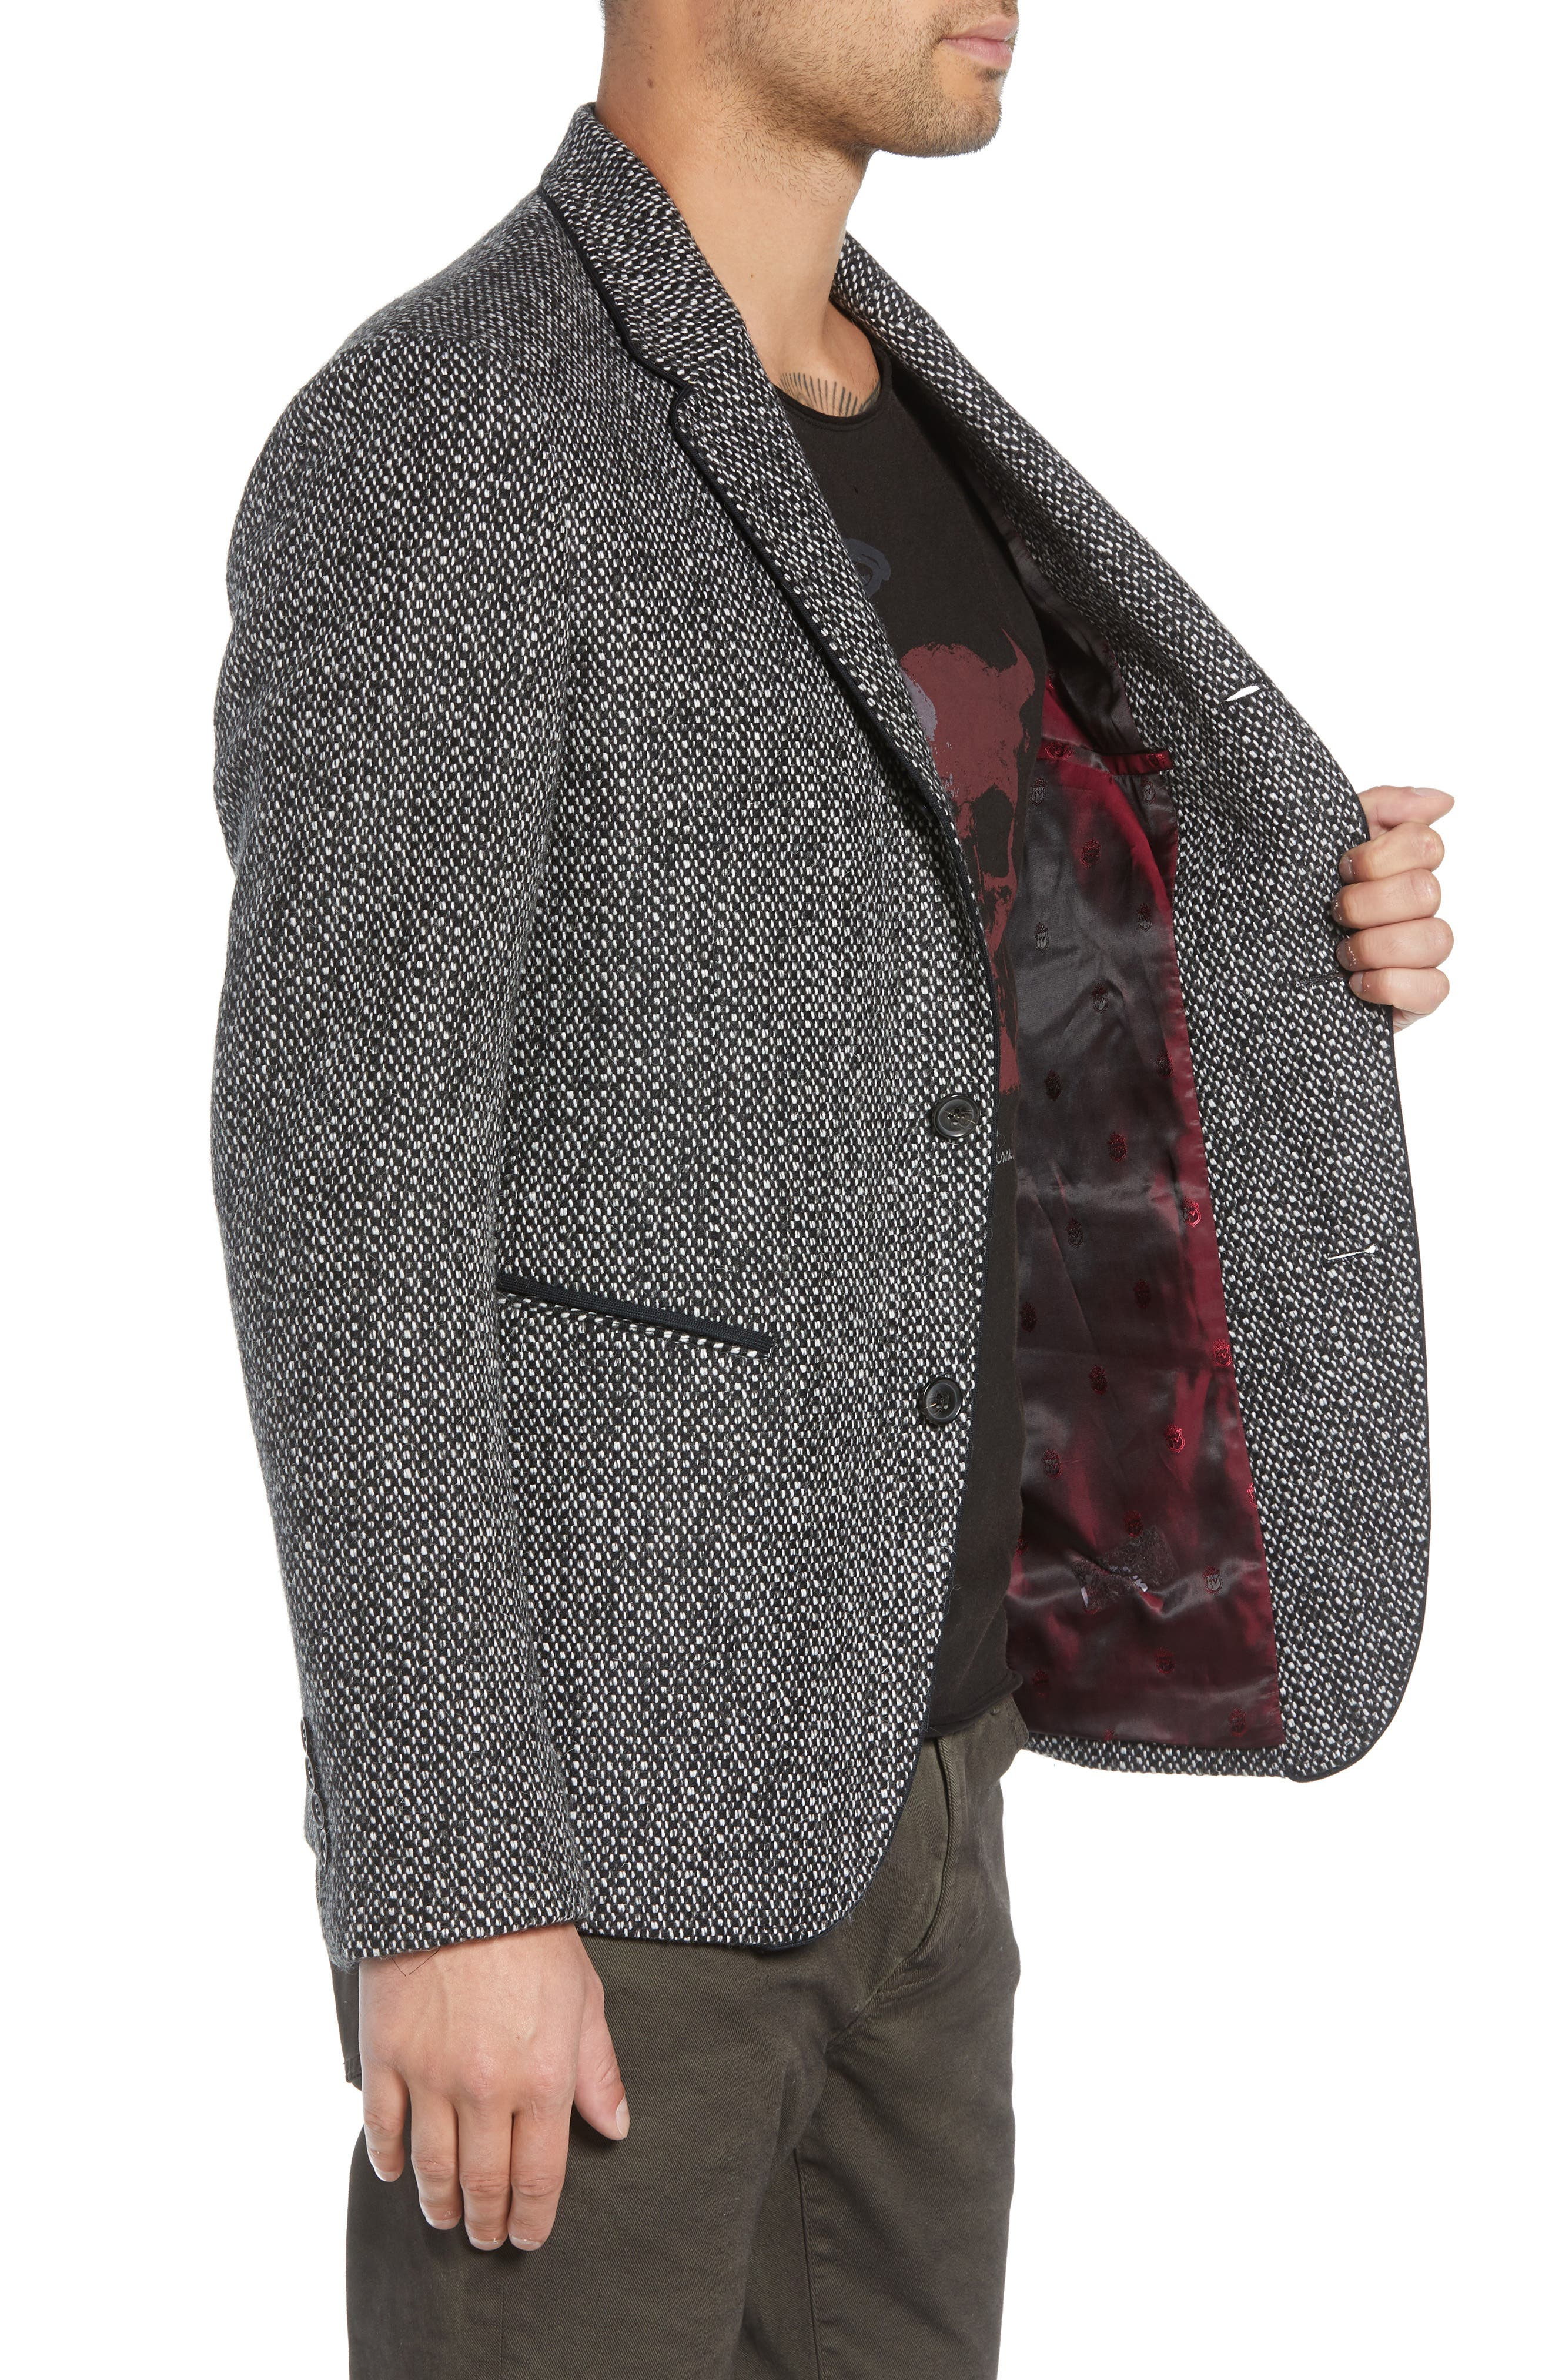 Piped Tweed Wool Blend Sport Coat,                             Alternate thumbnail 3, color,                             006